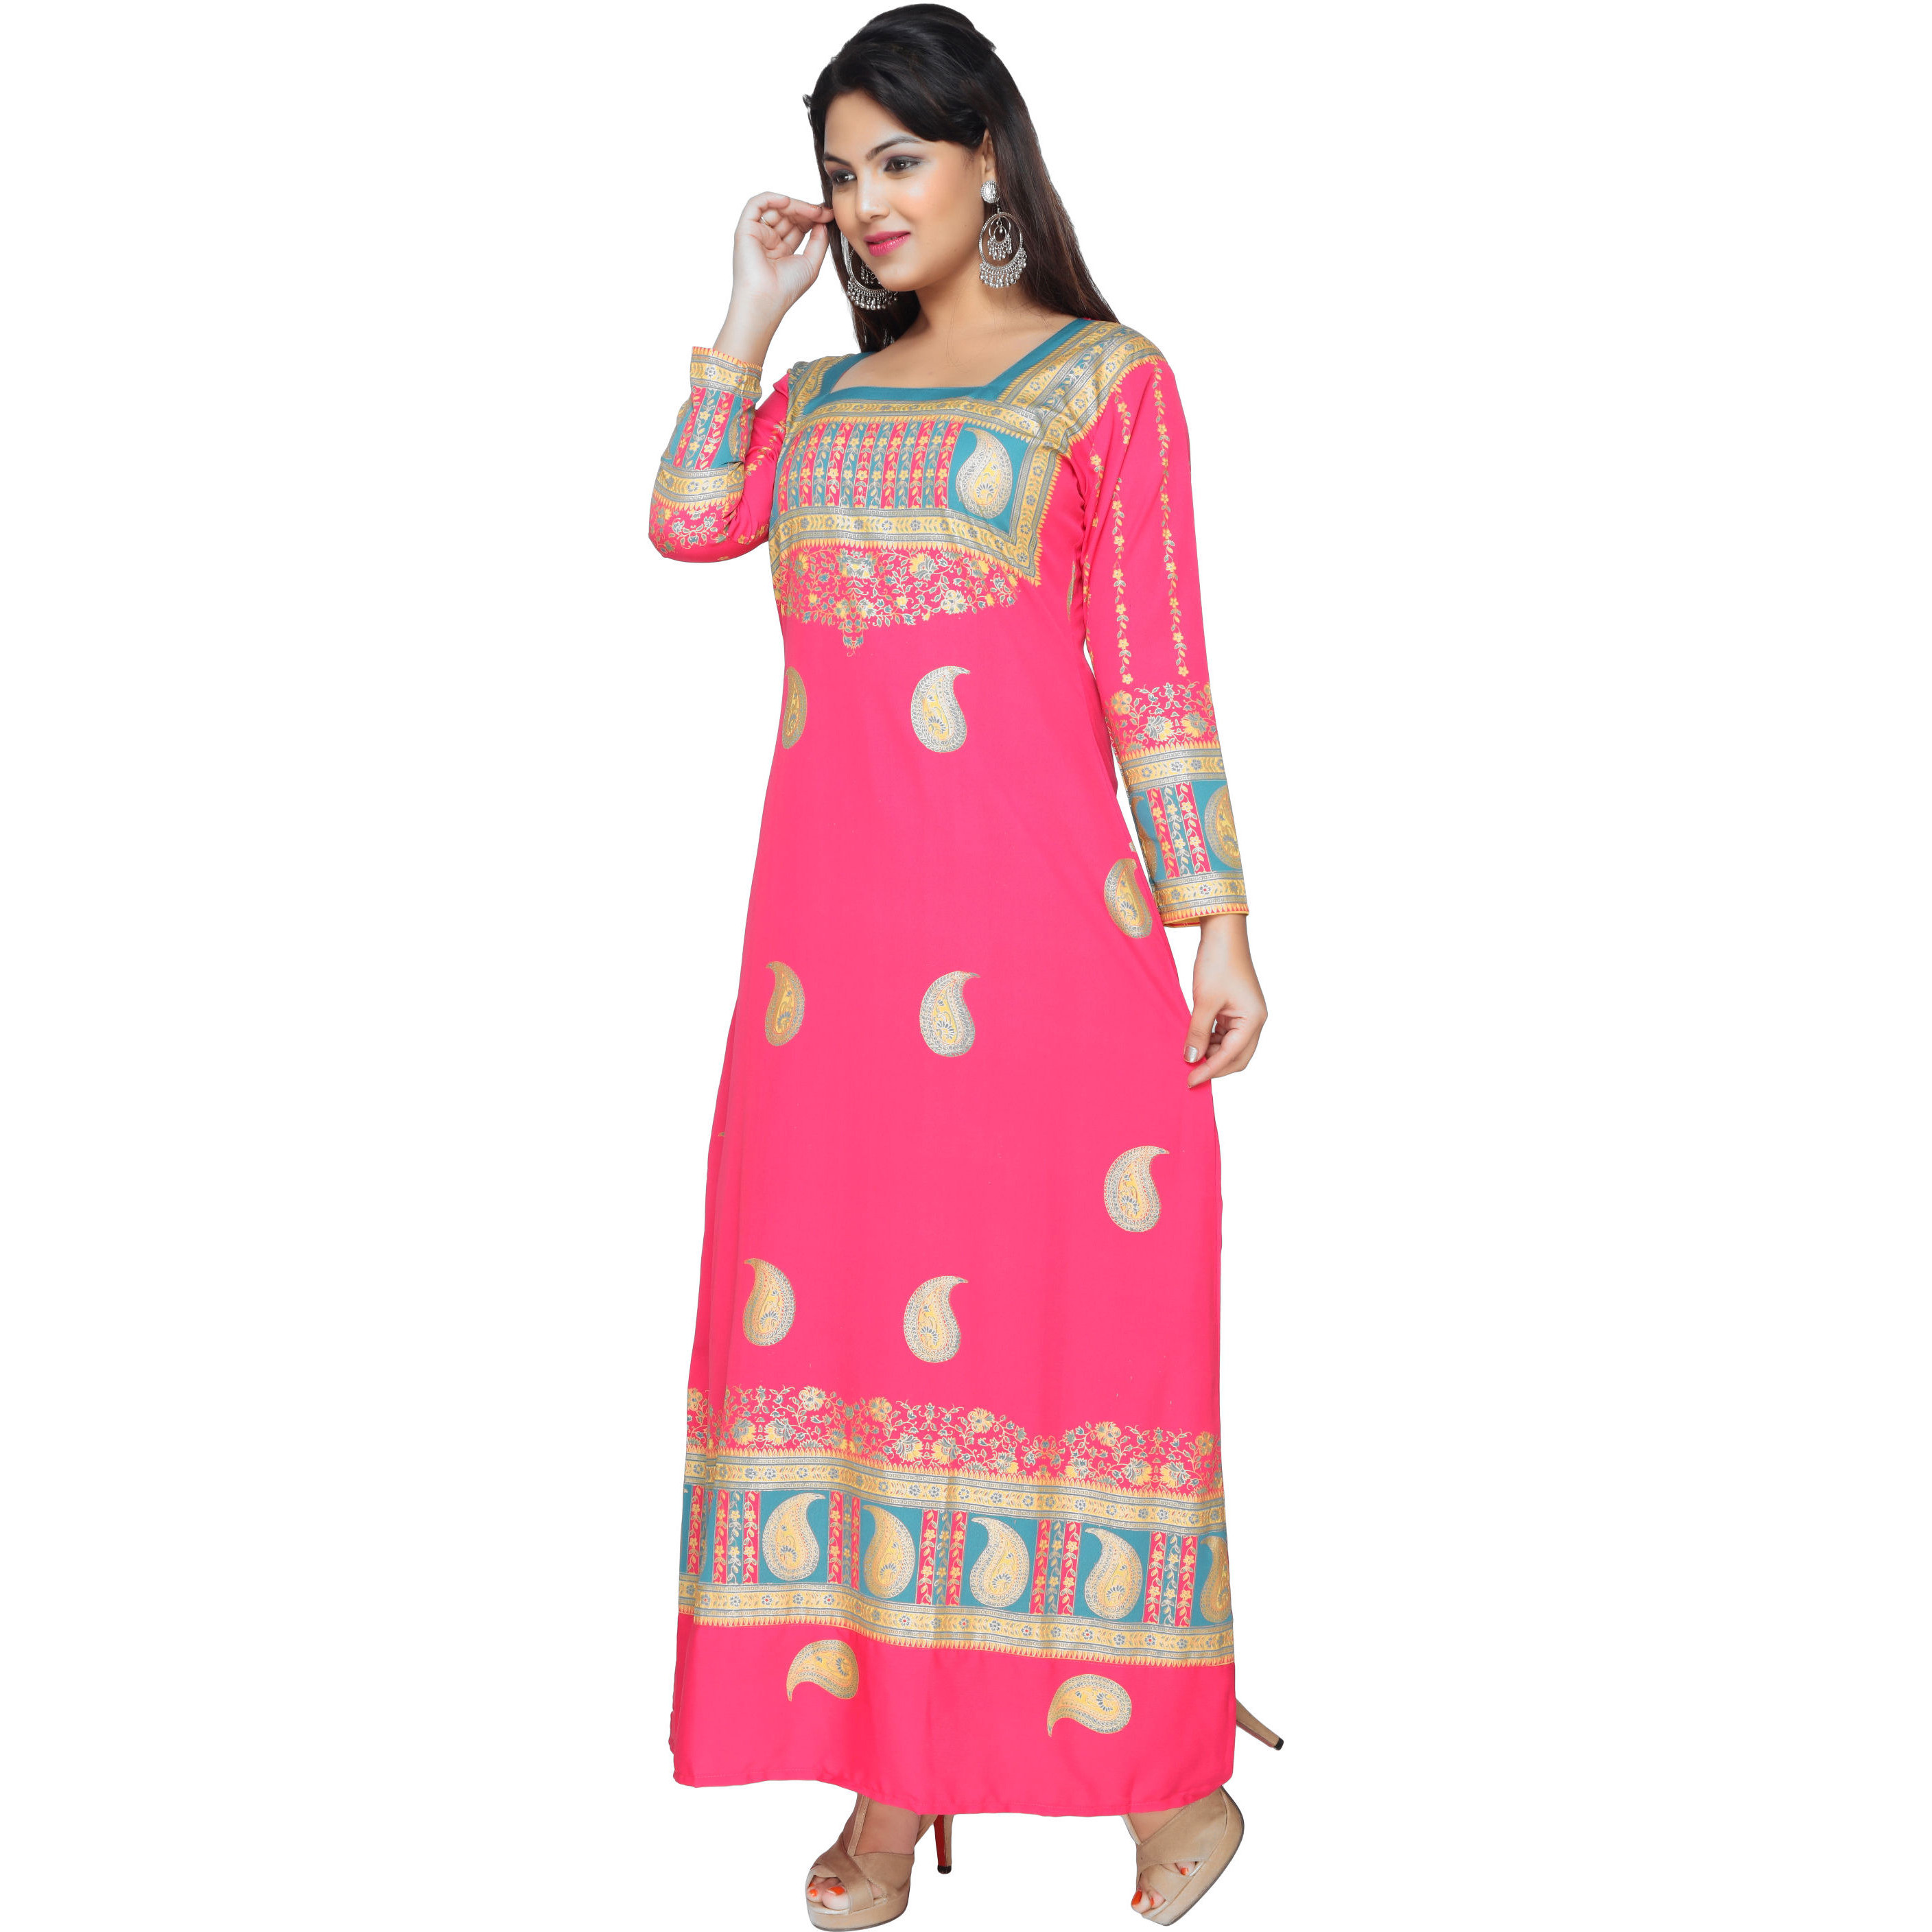 TrendyFashionMall Gold Print Kaftans Maxi Dresses with design in Front and Back (Color:TFMKFT01012-PINK, Size:46 - 2X-LARGE)